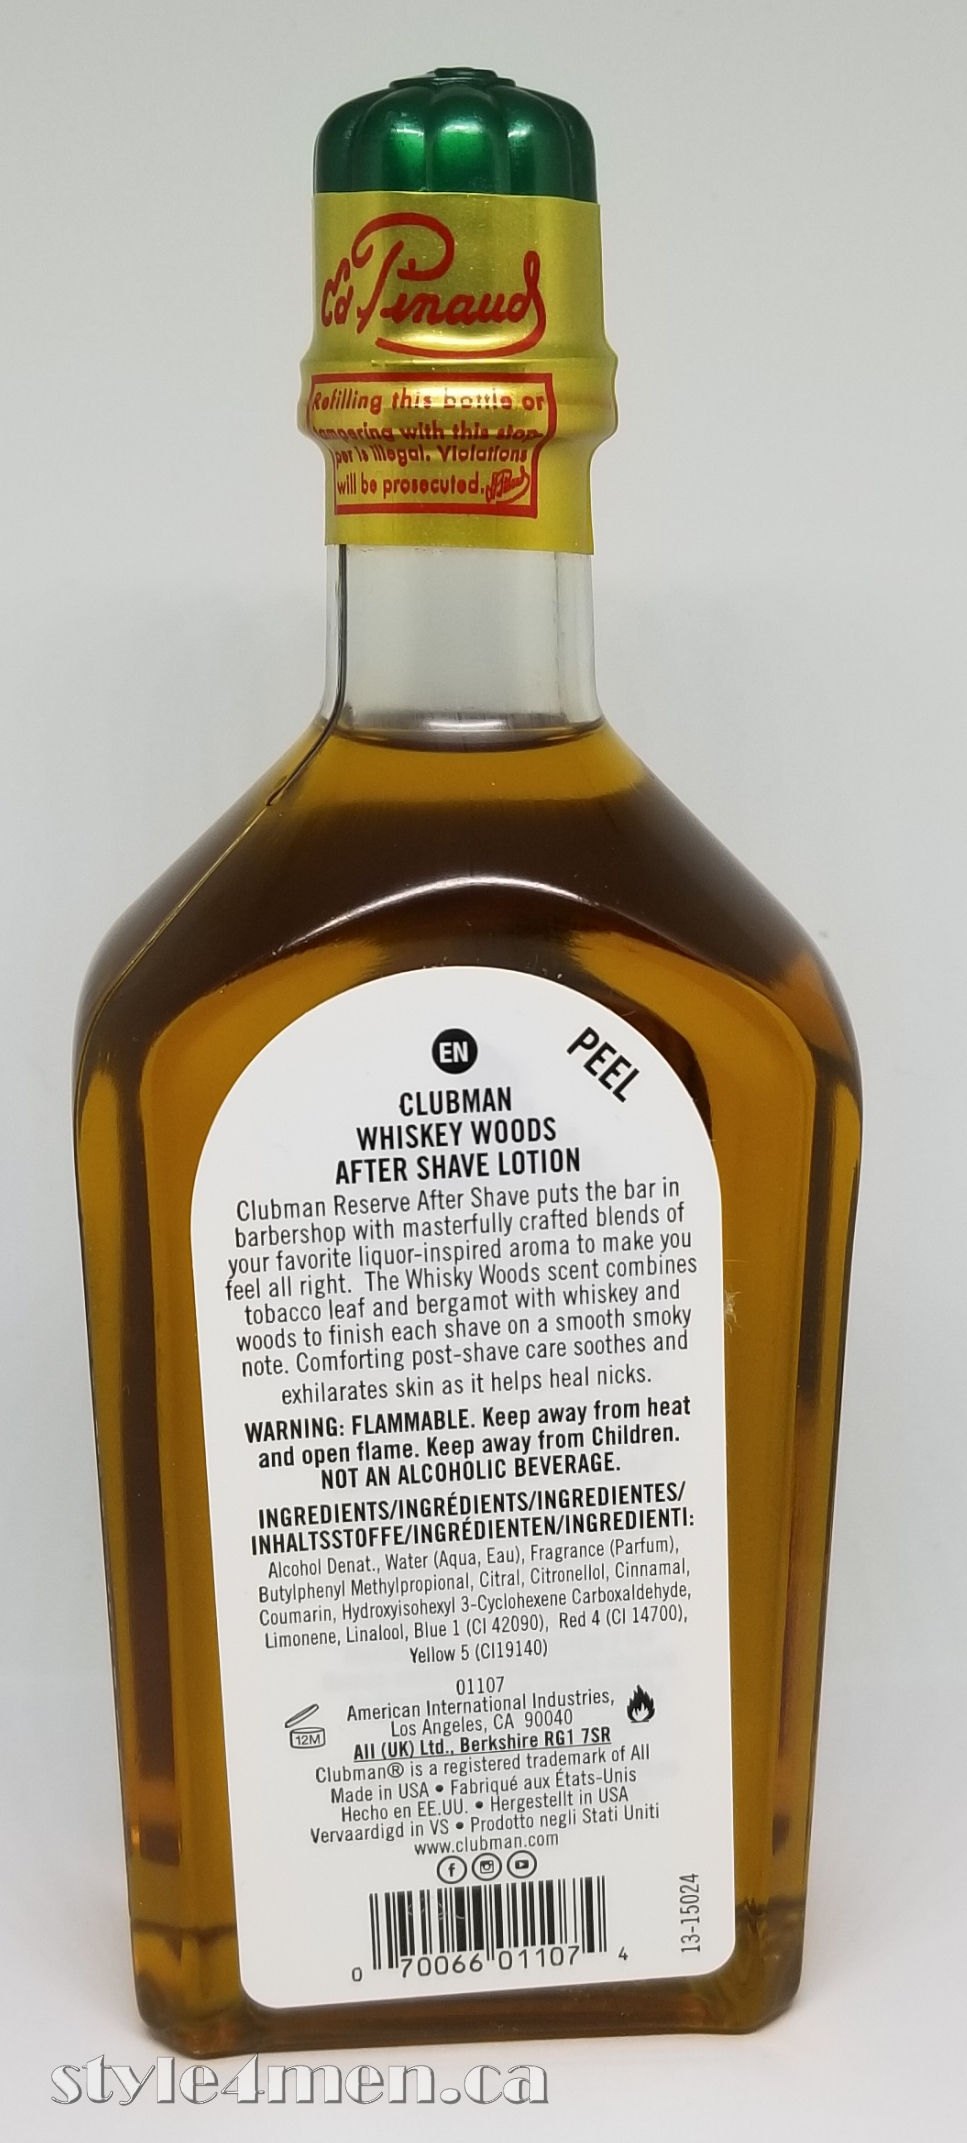 Clubman Reserve After Shave